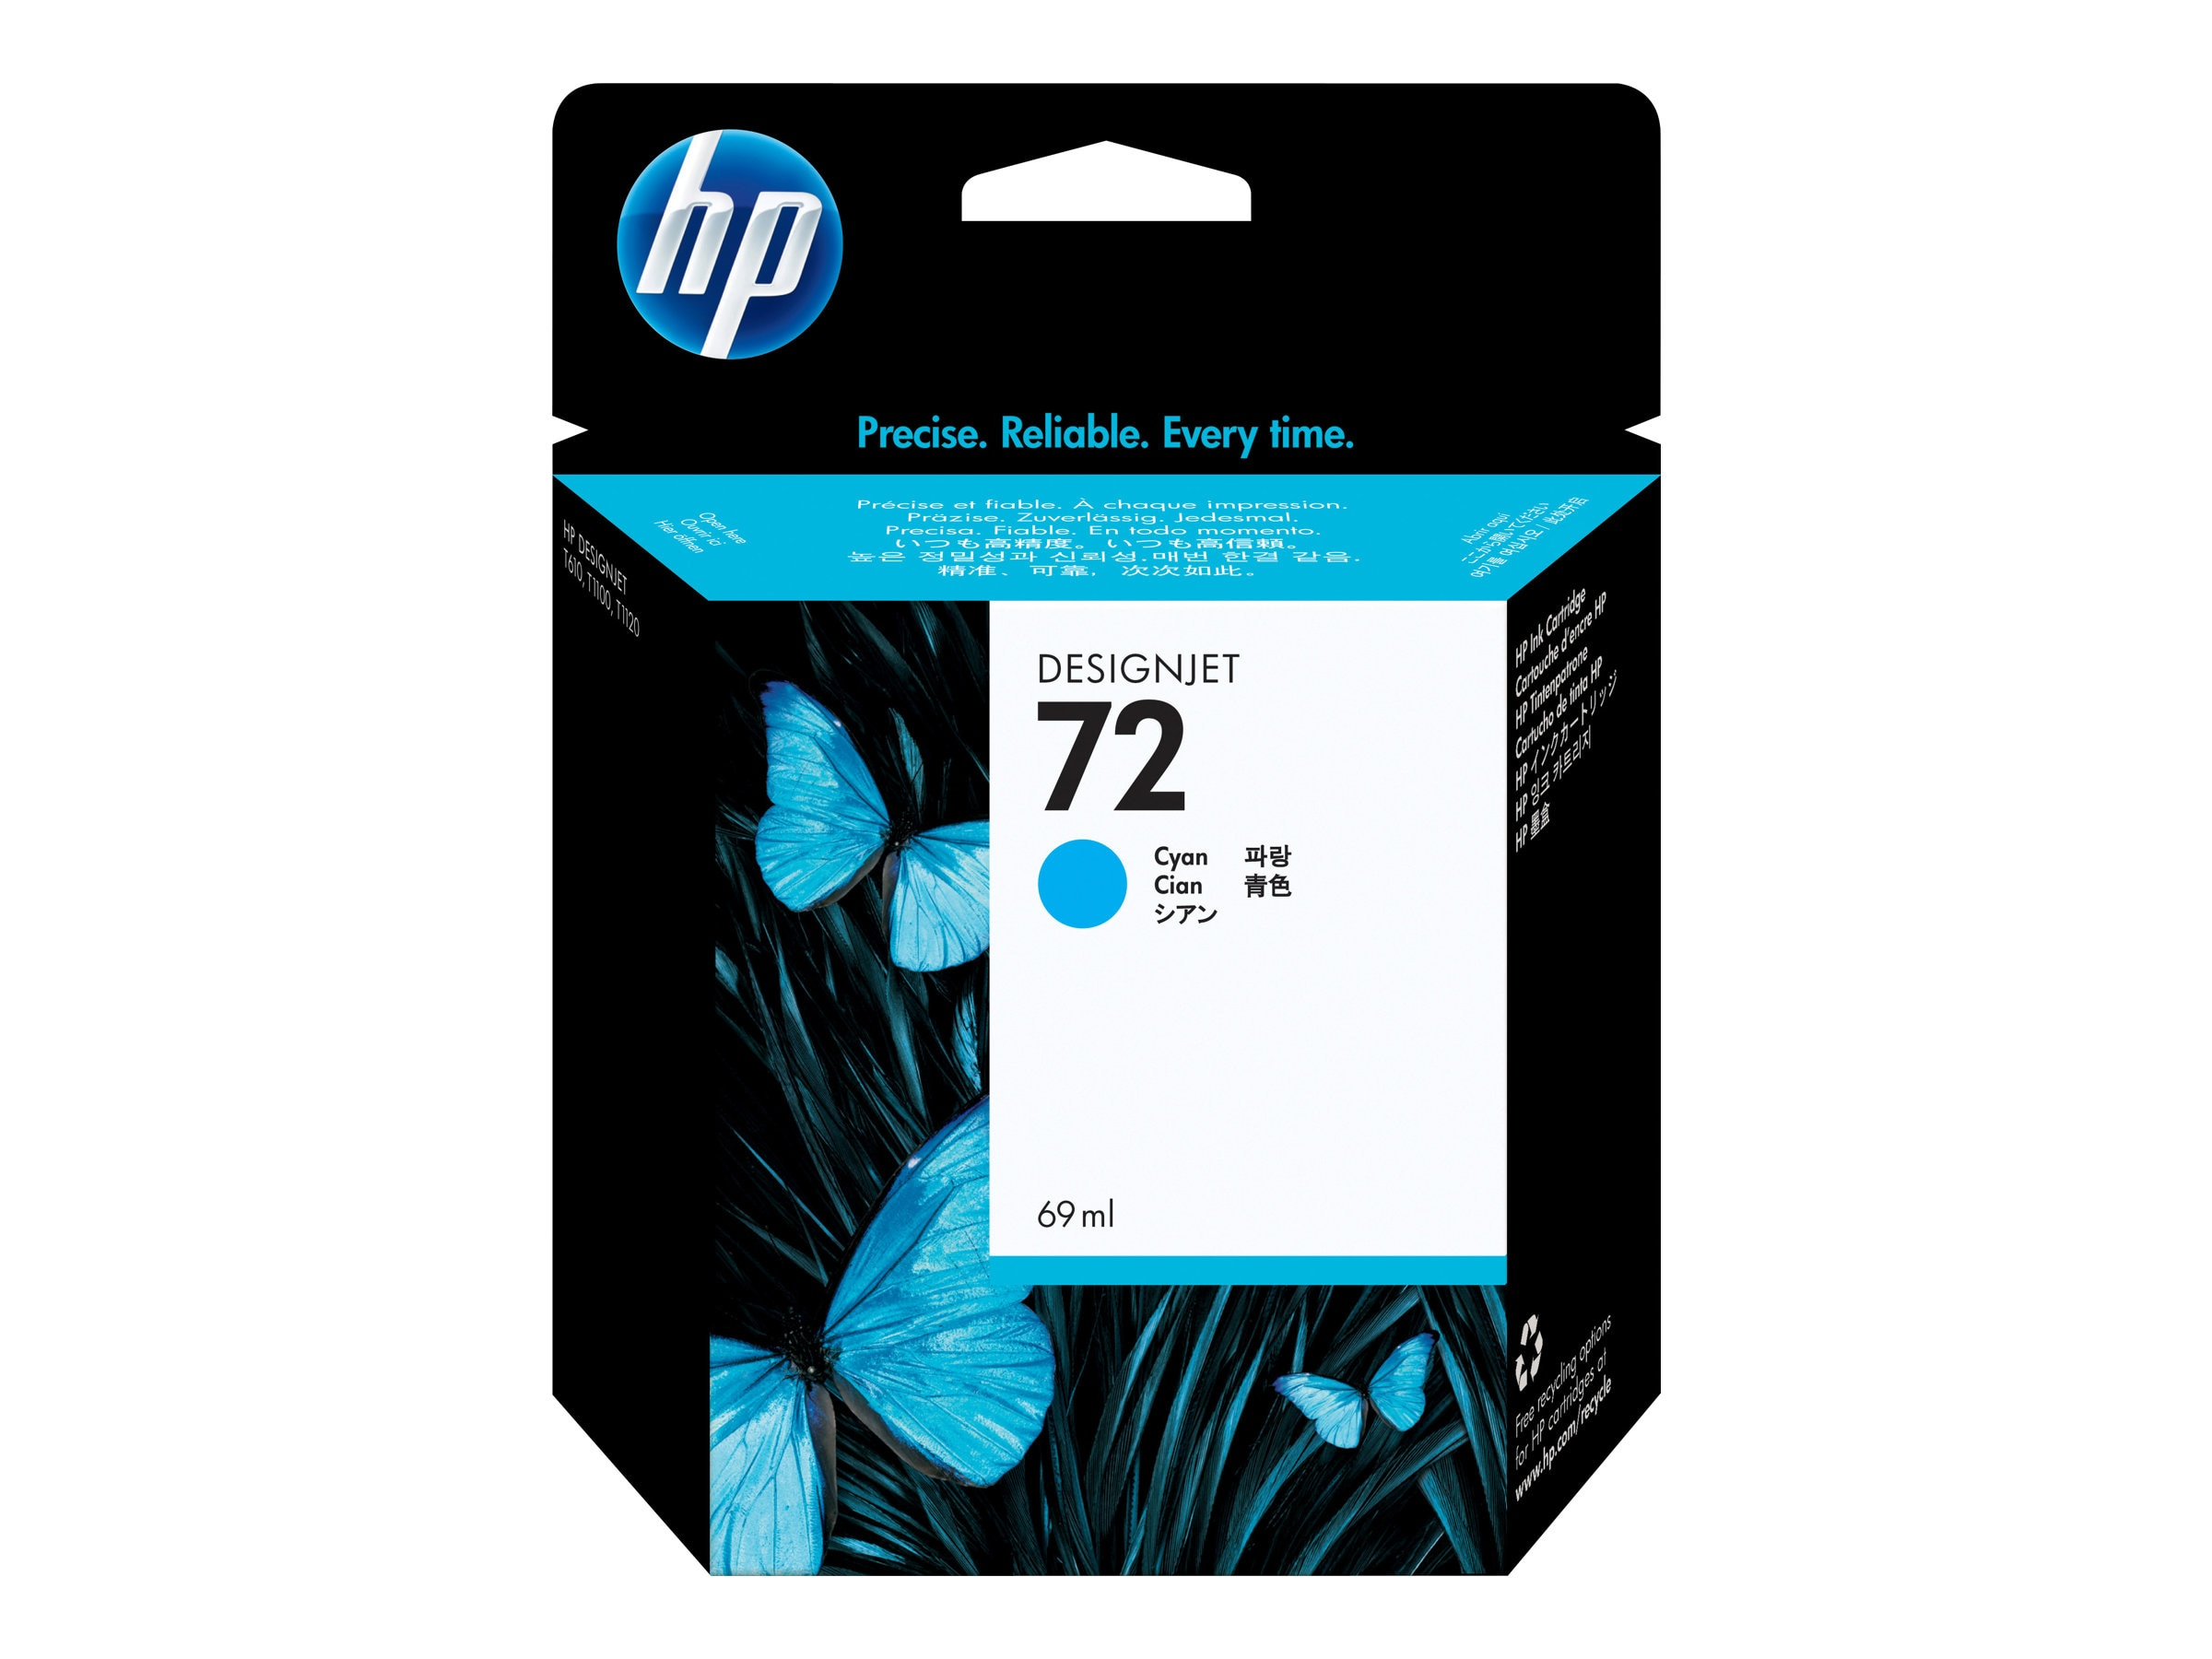 HP 72 Cyan Ink Cartridge (69ml)